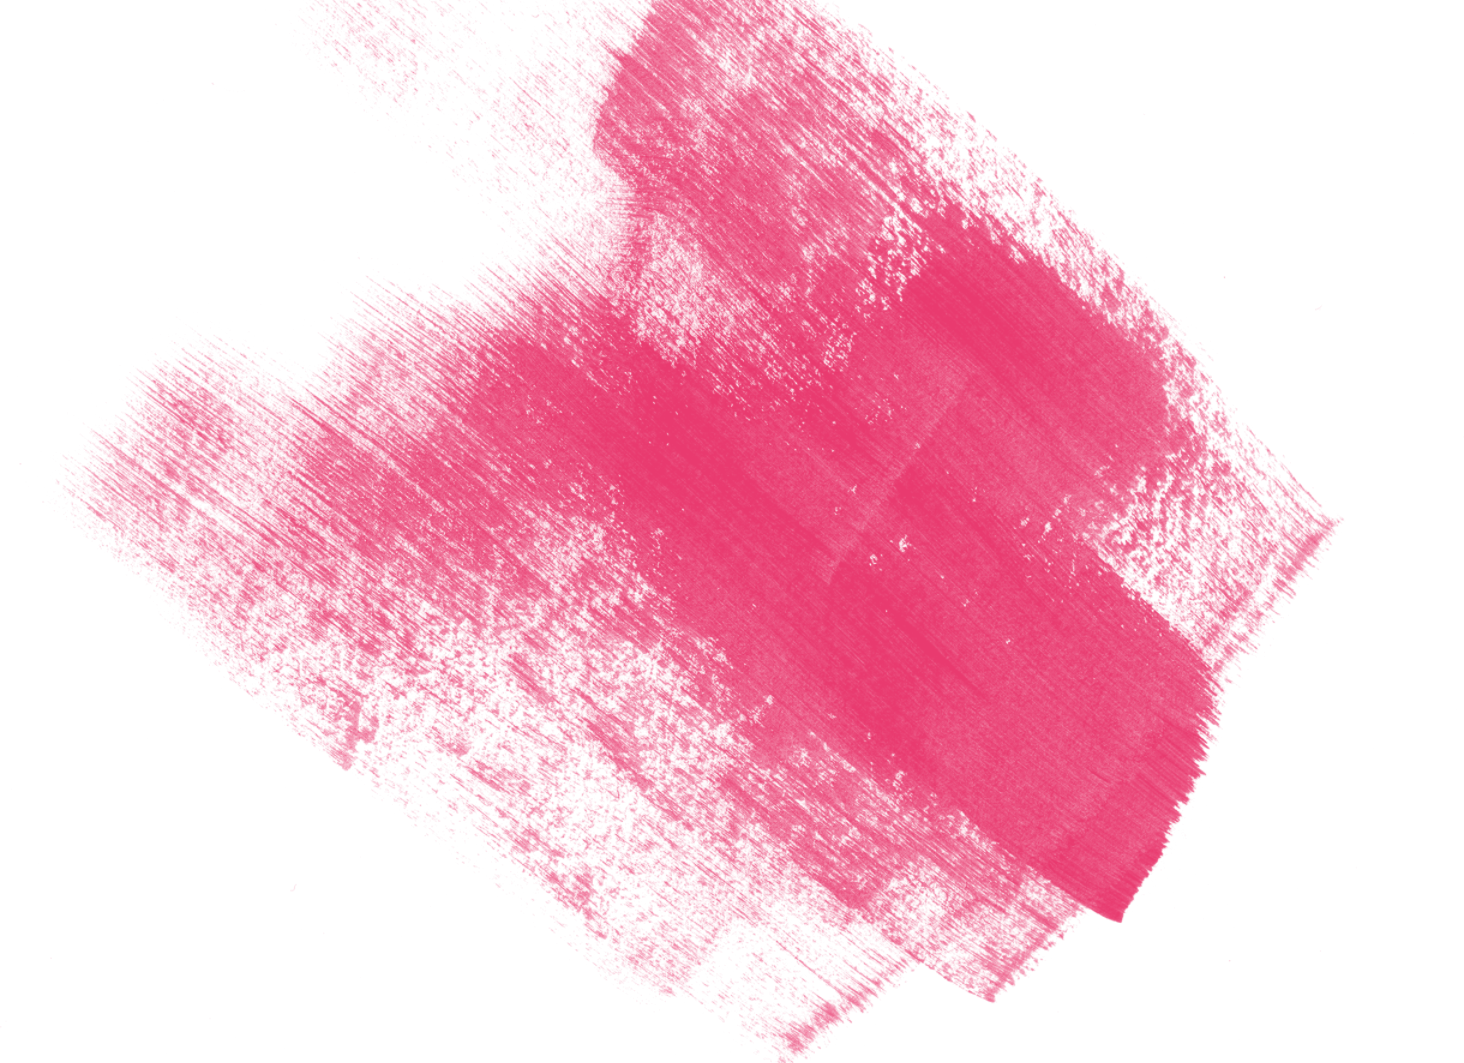 Pink texture png. Painting photography crayons transprent